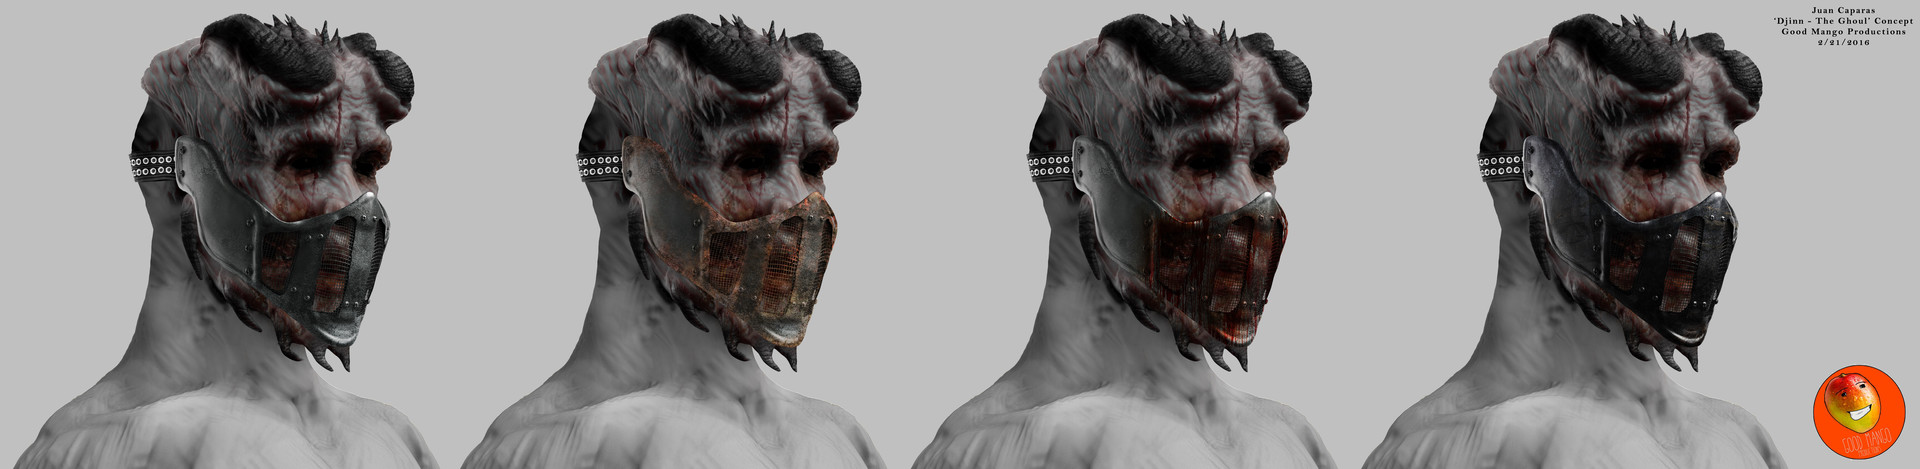 The Ghoul Concept Art   Good Mango Productions